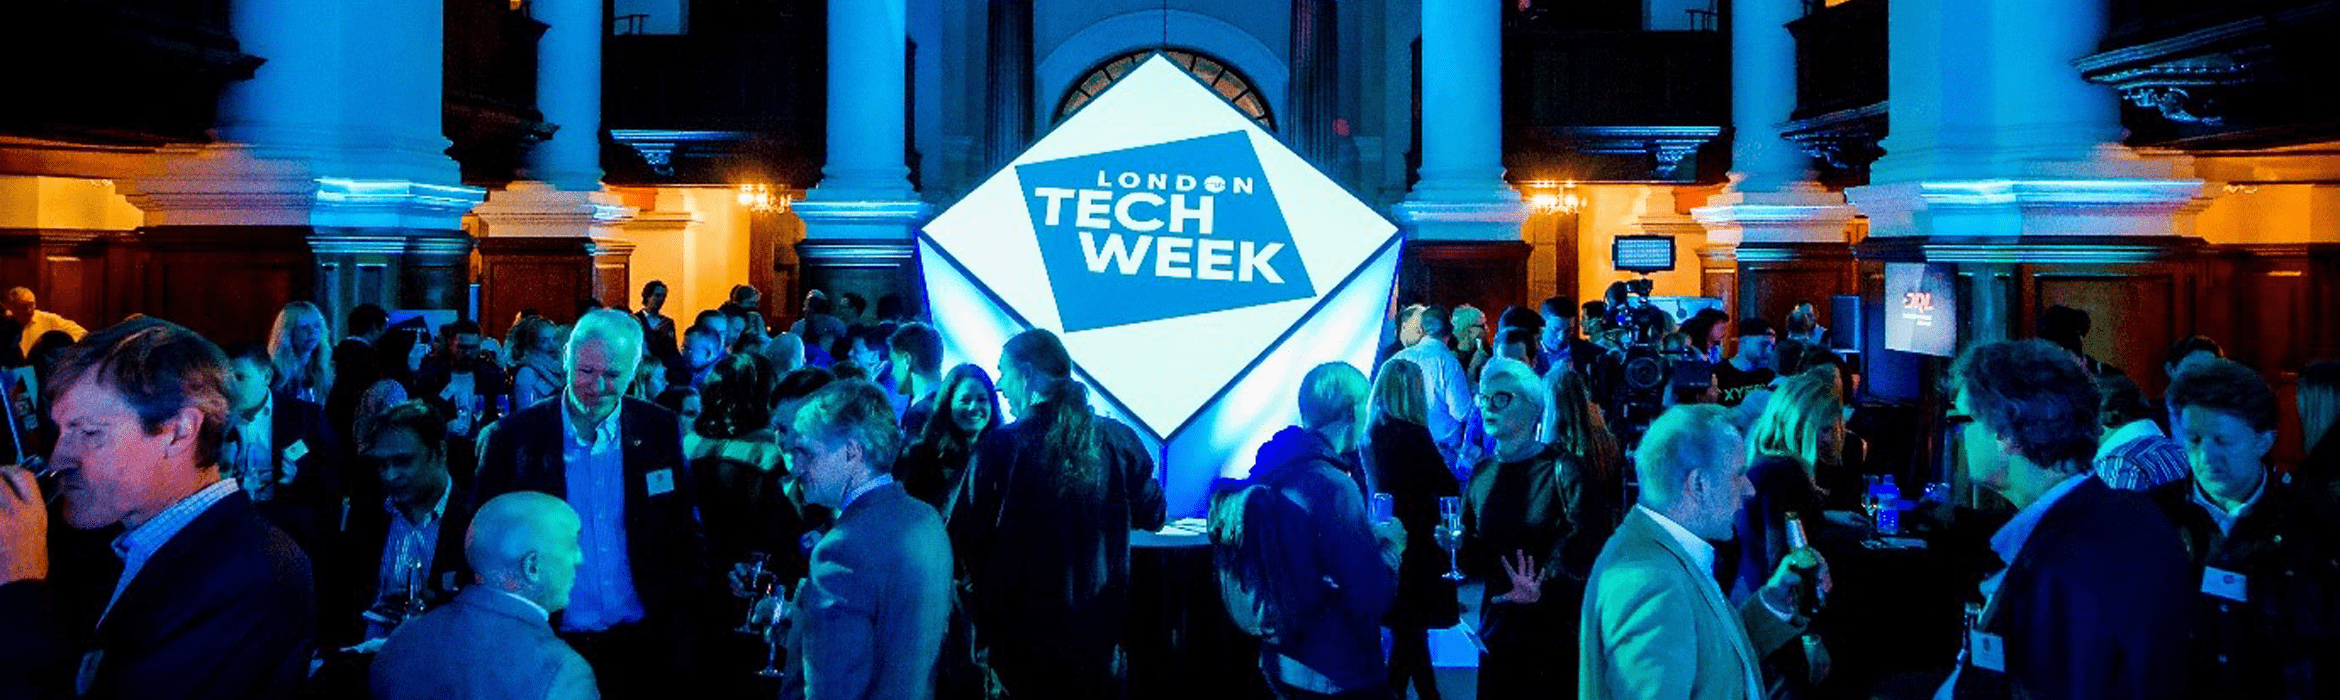 Brother's Guide to Retail Tech Events: London Tech Week